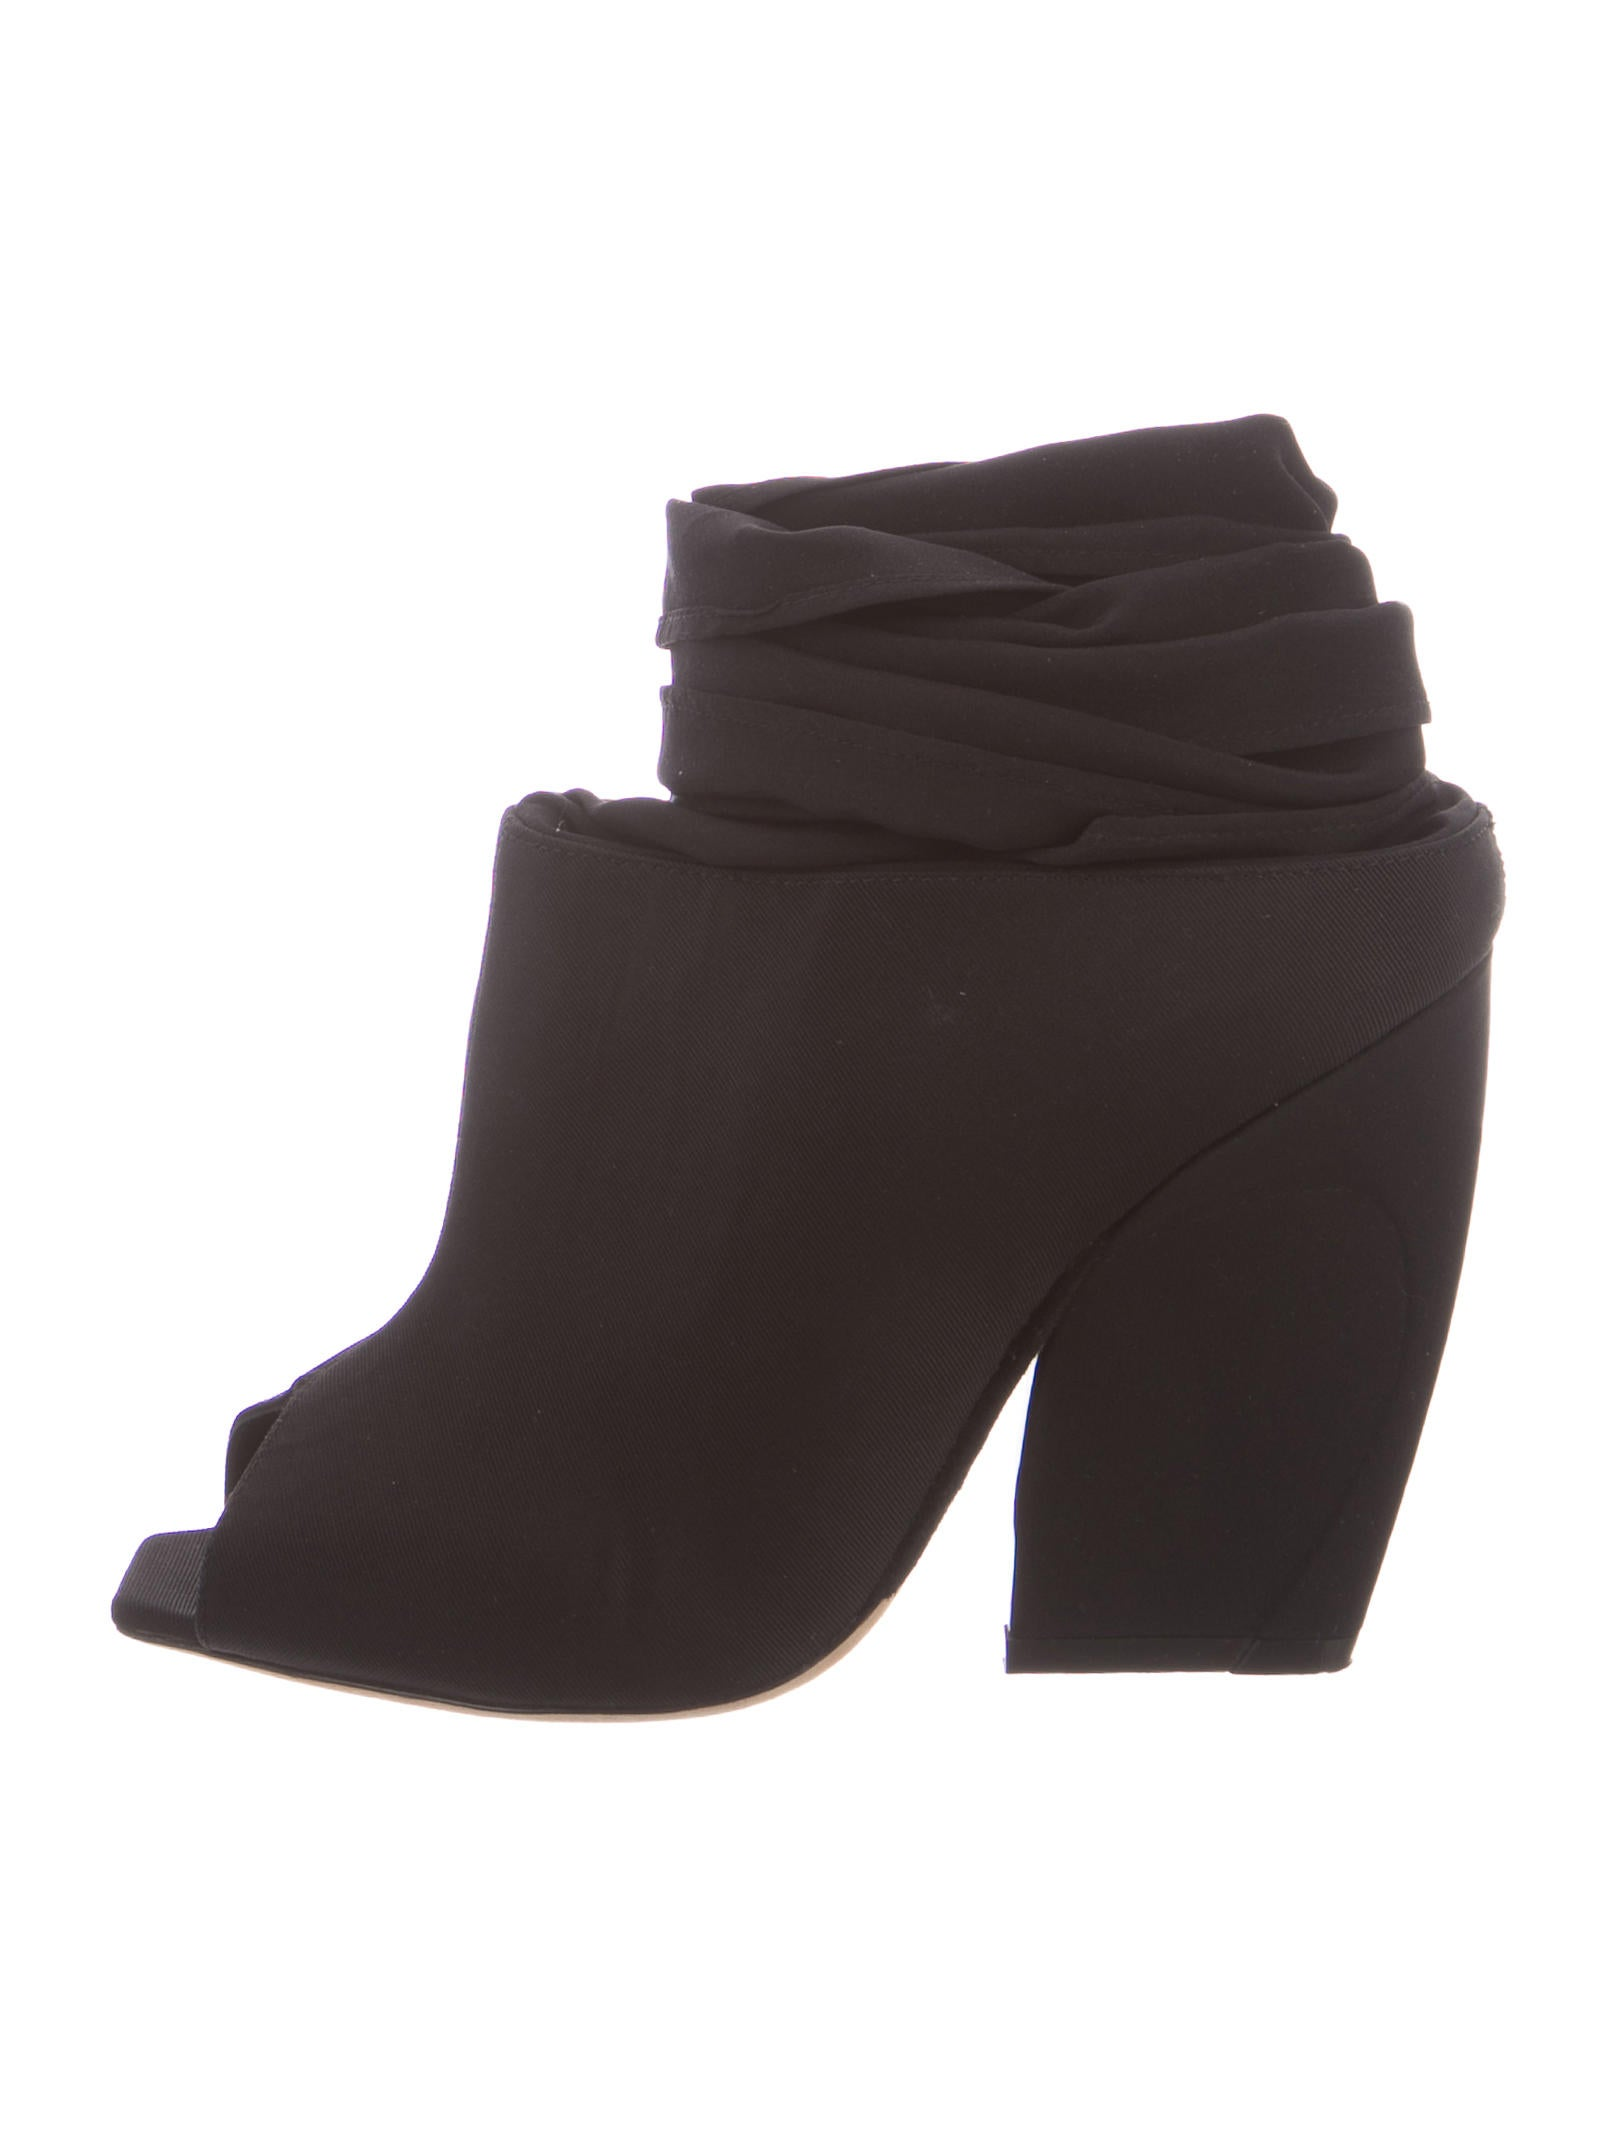 Christian Dior Woven Peep-Toe Booties discount pick a best clearance supply buy cheap newest rKnR2X